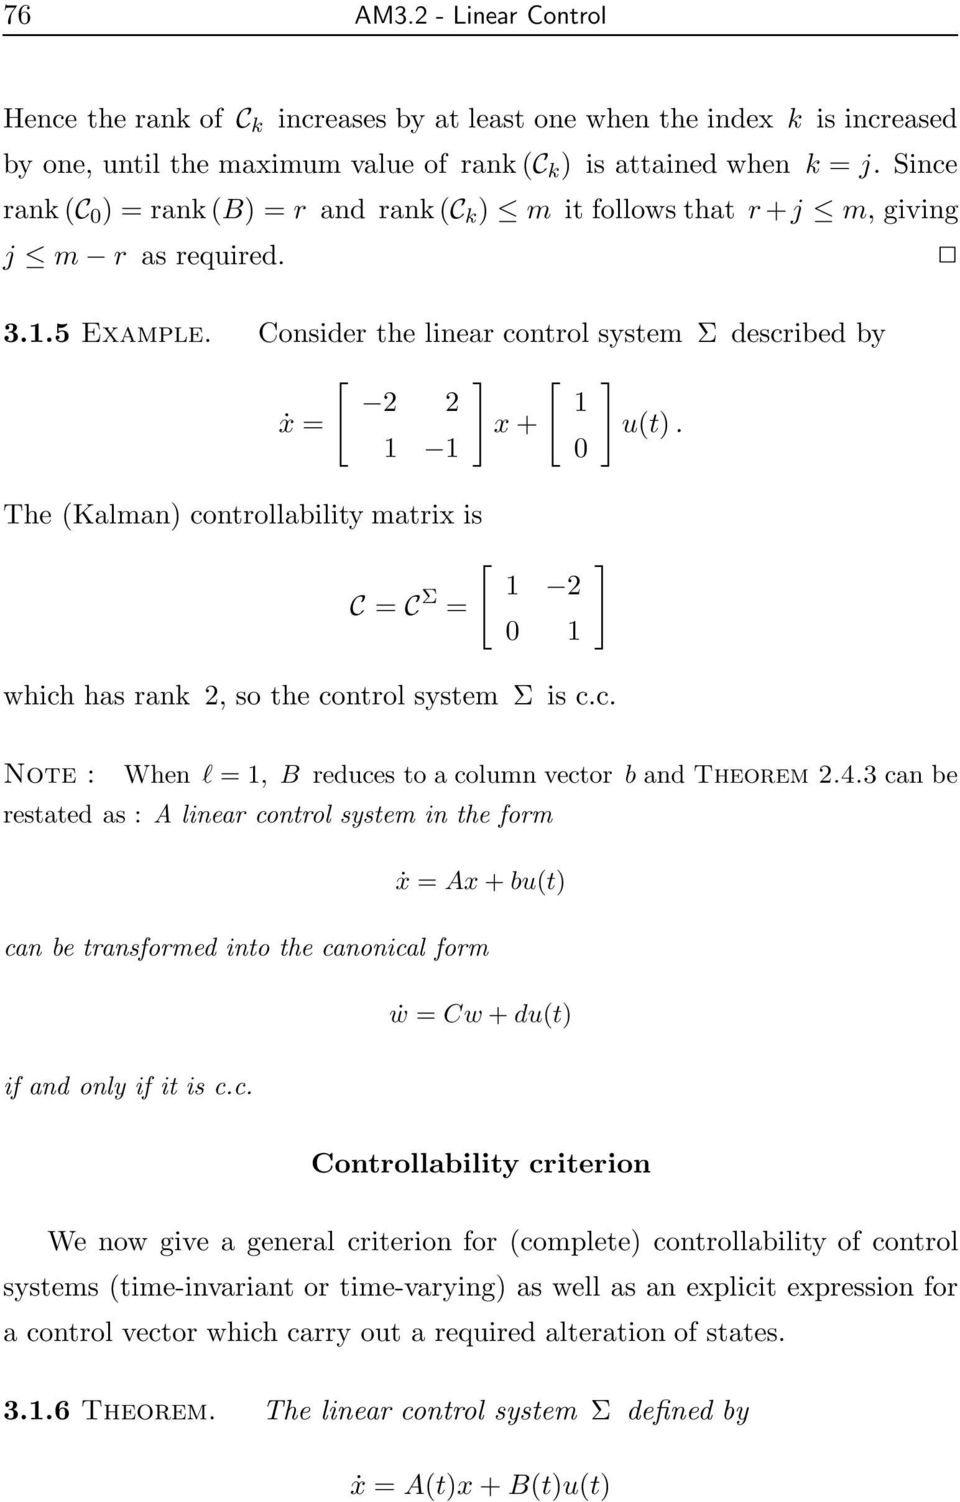 1 1 The (Kalman) controllability matrix is 1 2 C = C Σ = 1 which has rank 2, so the control system Σ is c.c. Note : When l = 1, B reduces to a column vector b and Theorem 2.4.